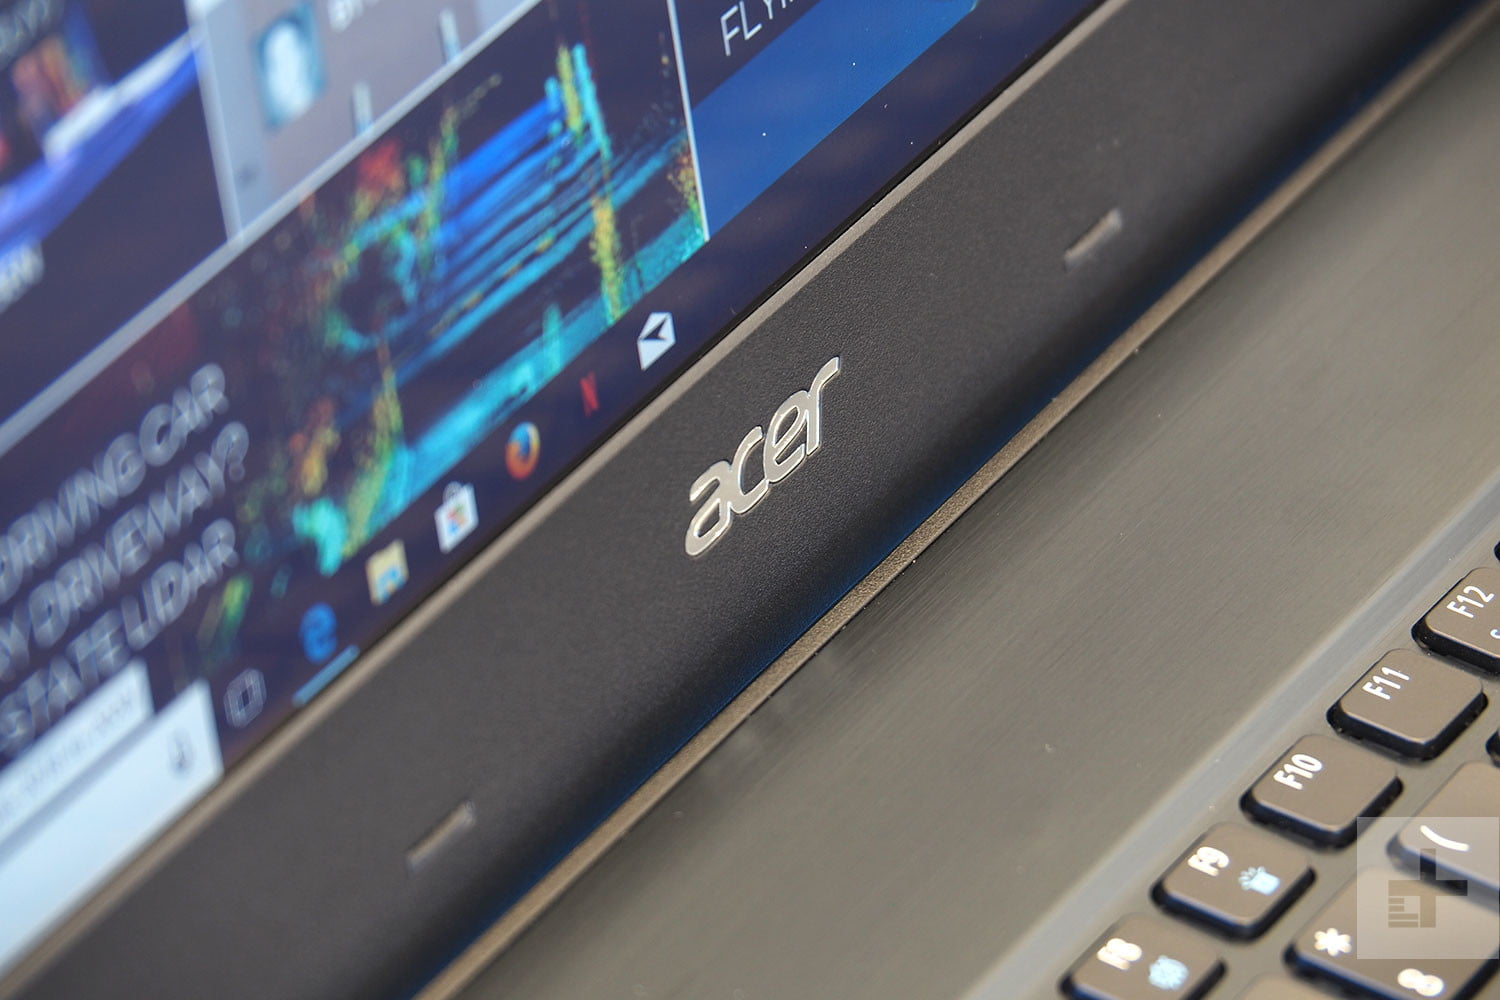 Acer Aspire Es 15 Acer Aspire E 15 Review Digital Trends